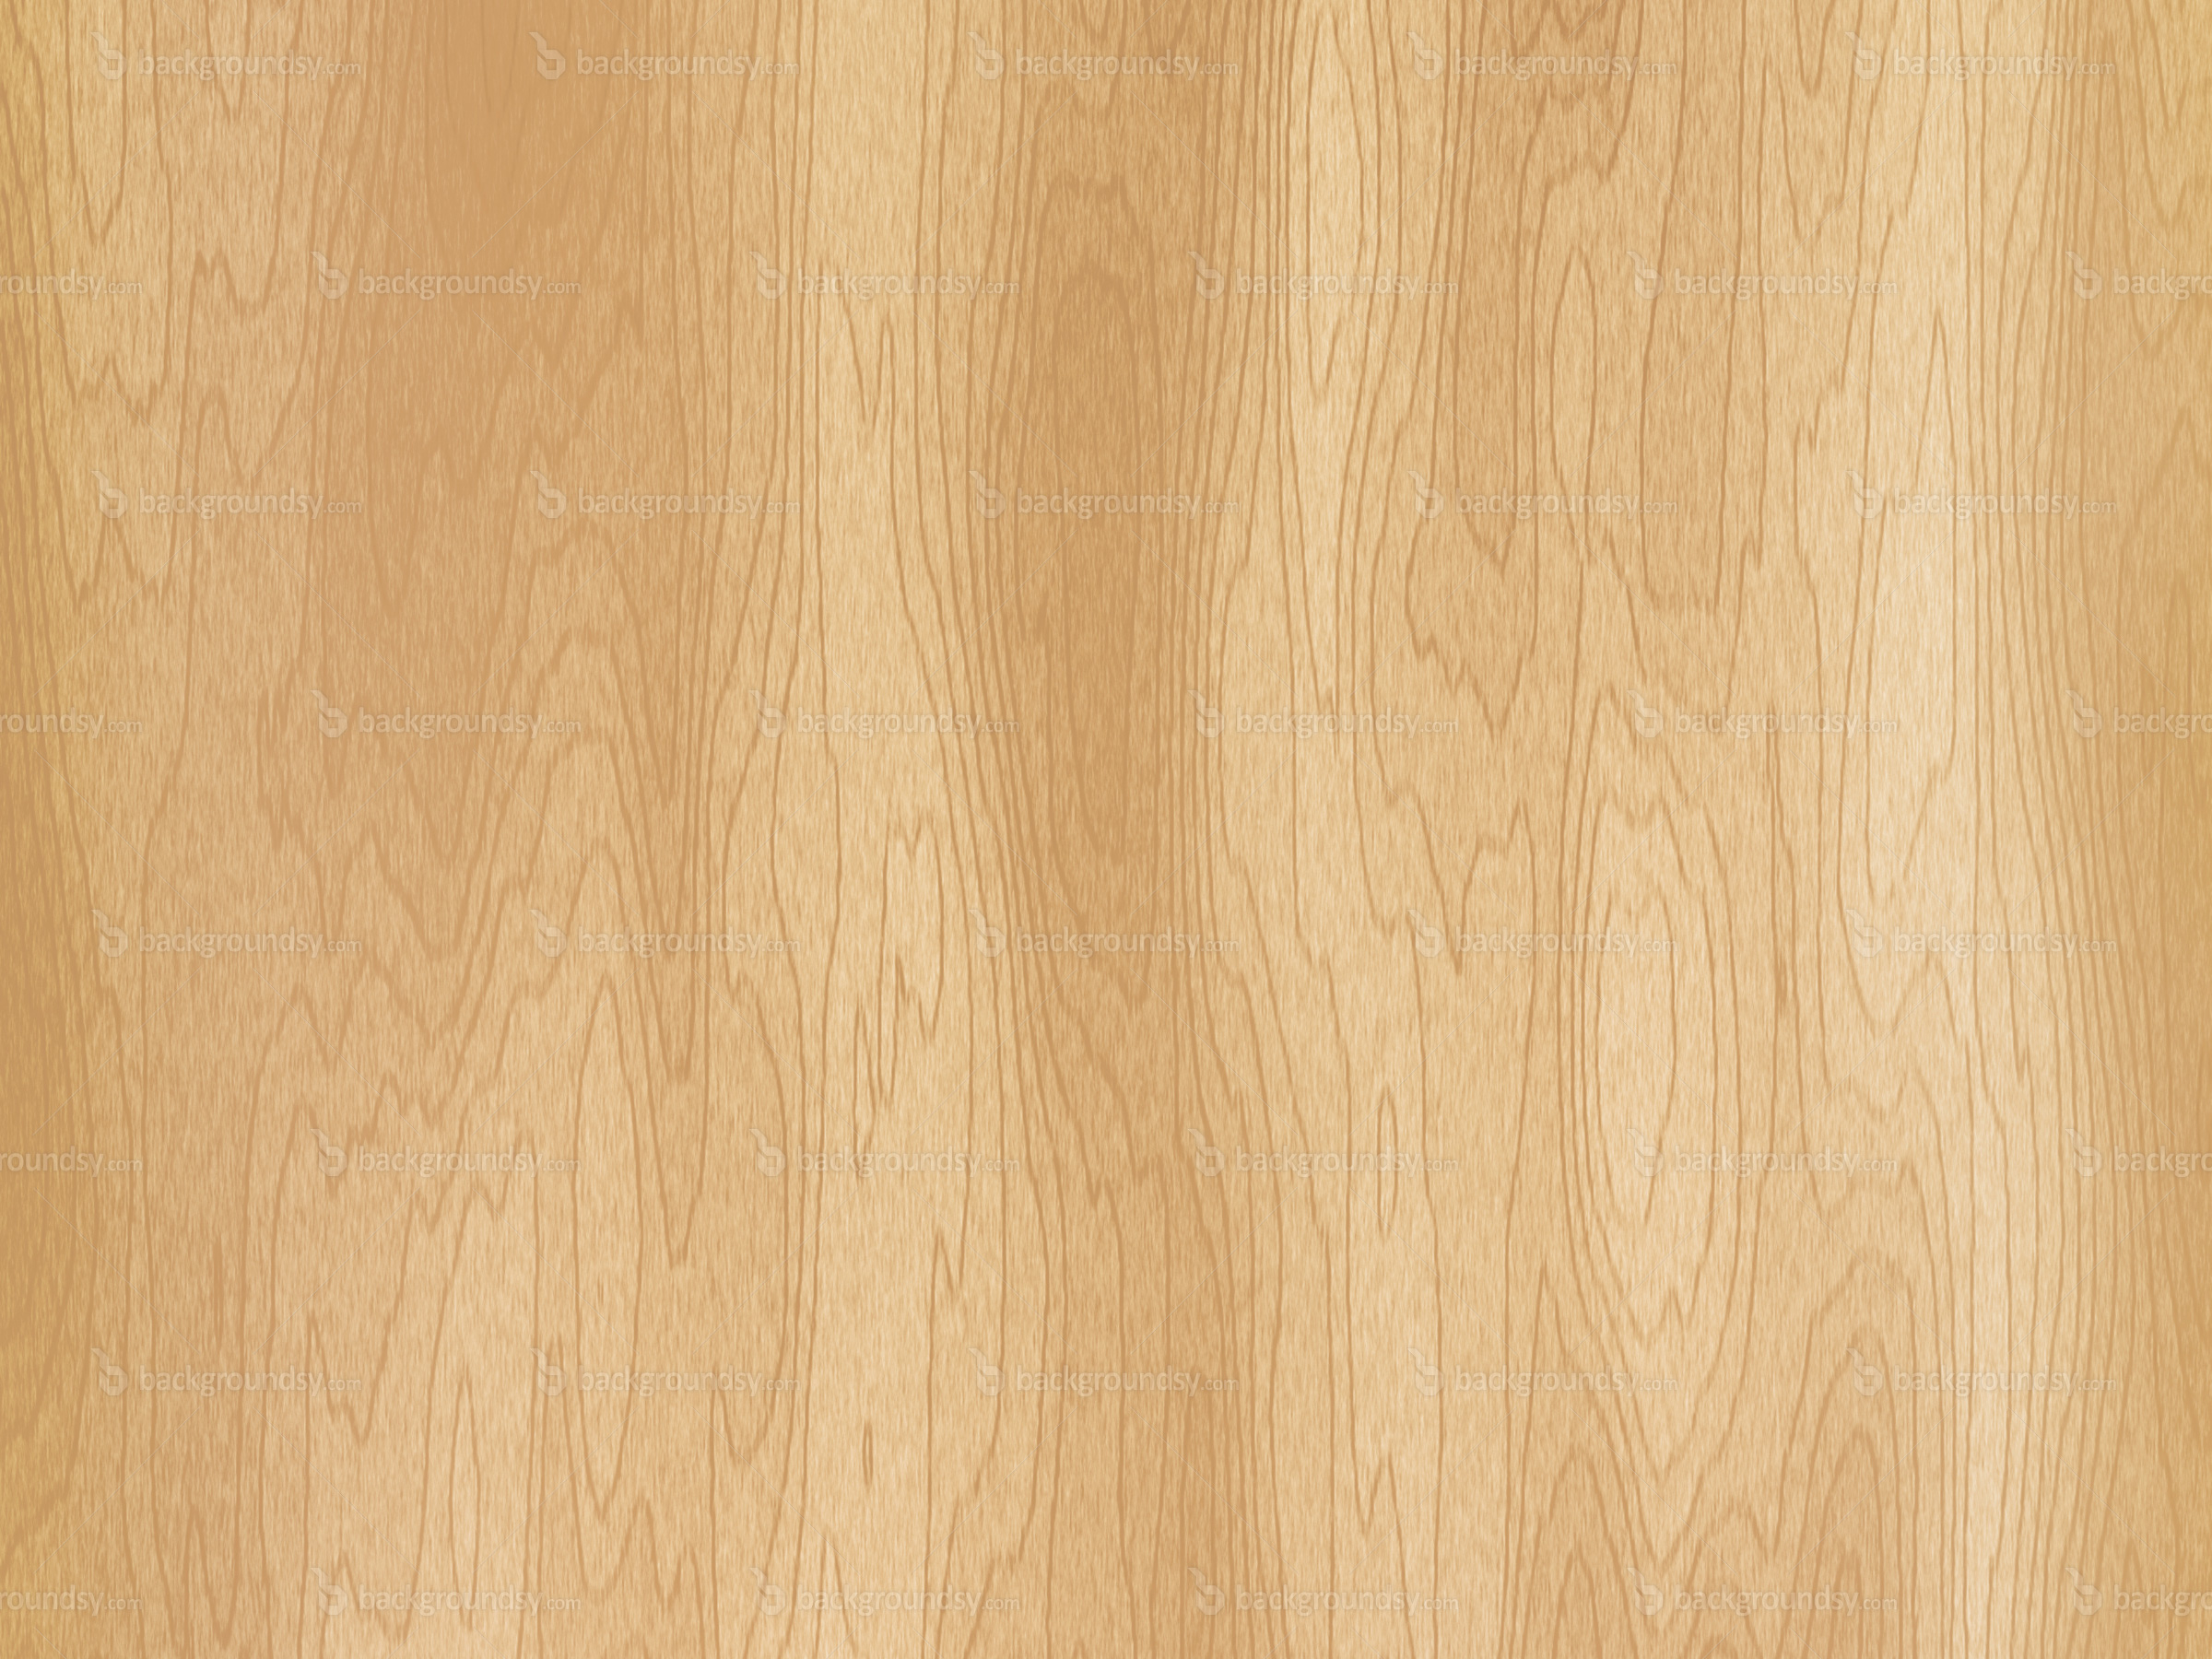 Wood Background Clipart Clipart Suggest : wood grain background backgroundsy com zh9Zu0 clipart from www.clipartkid.com size 2400 x 1800 jpeg 1268kB